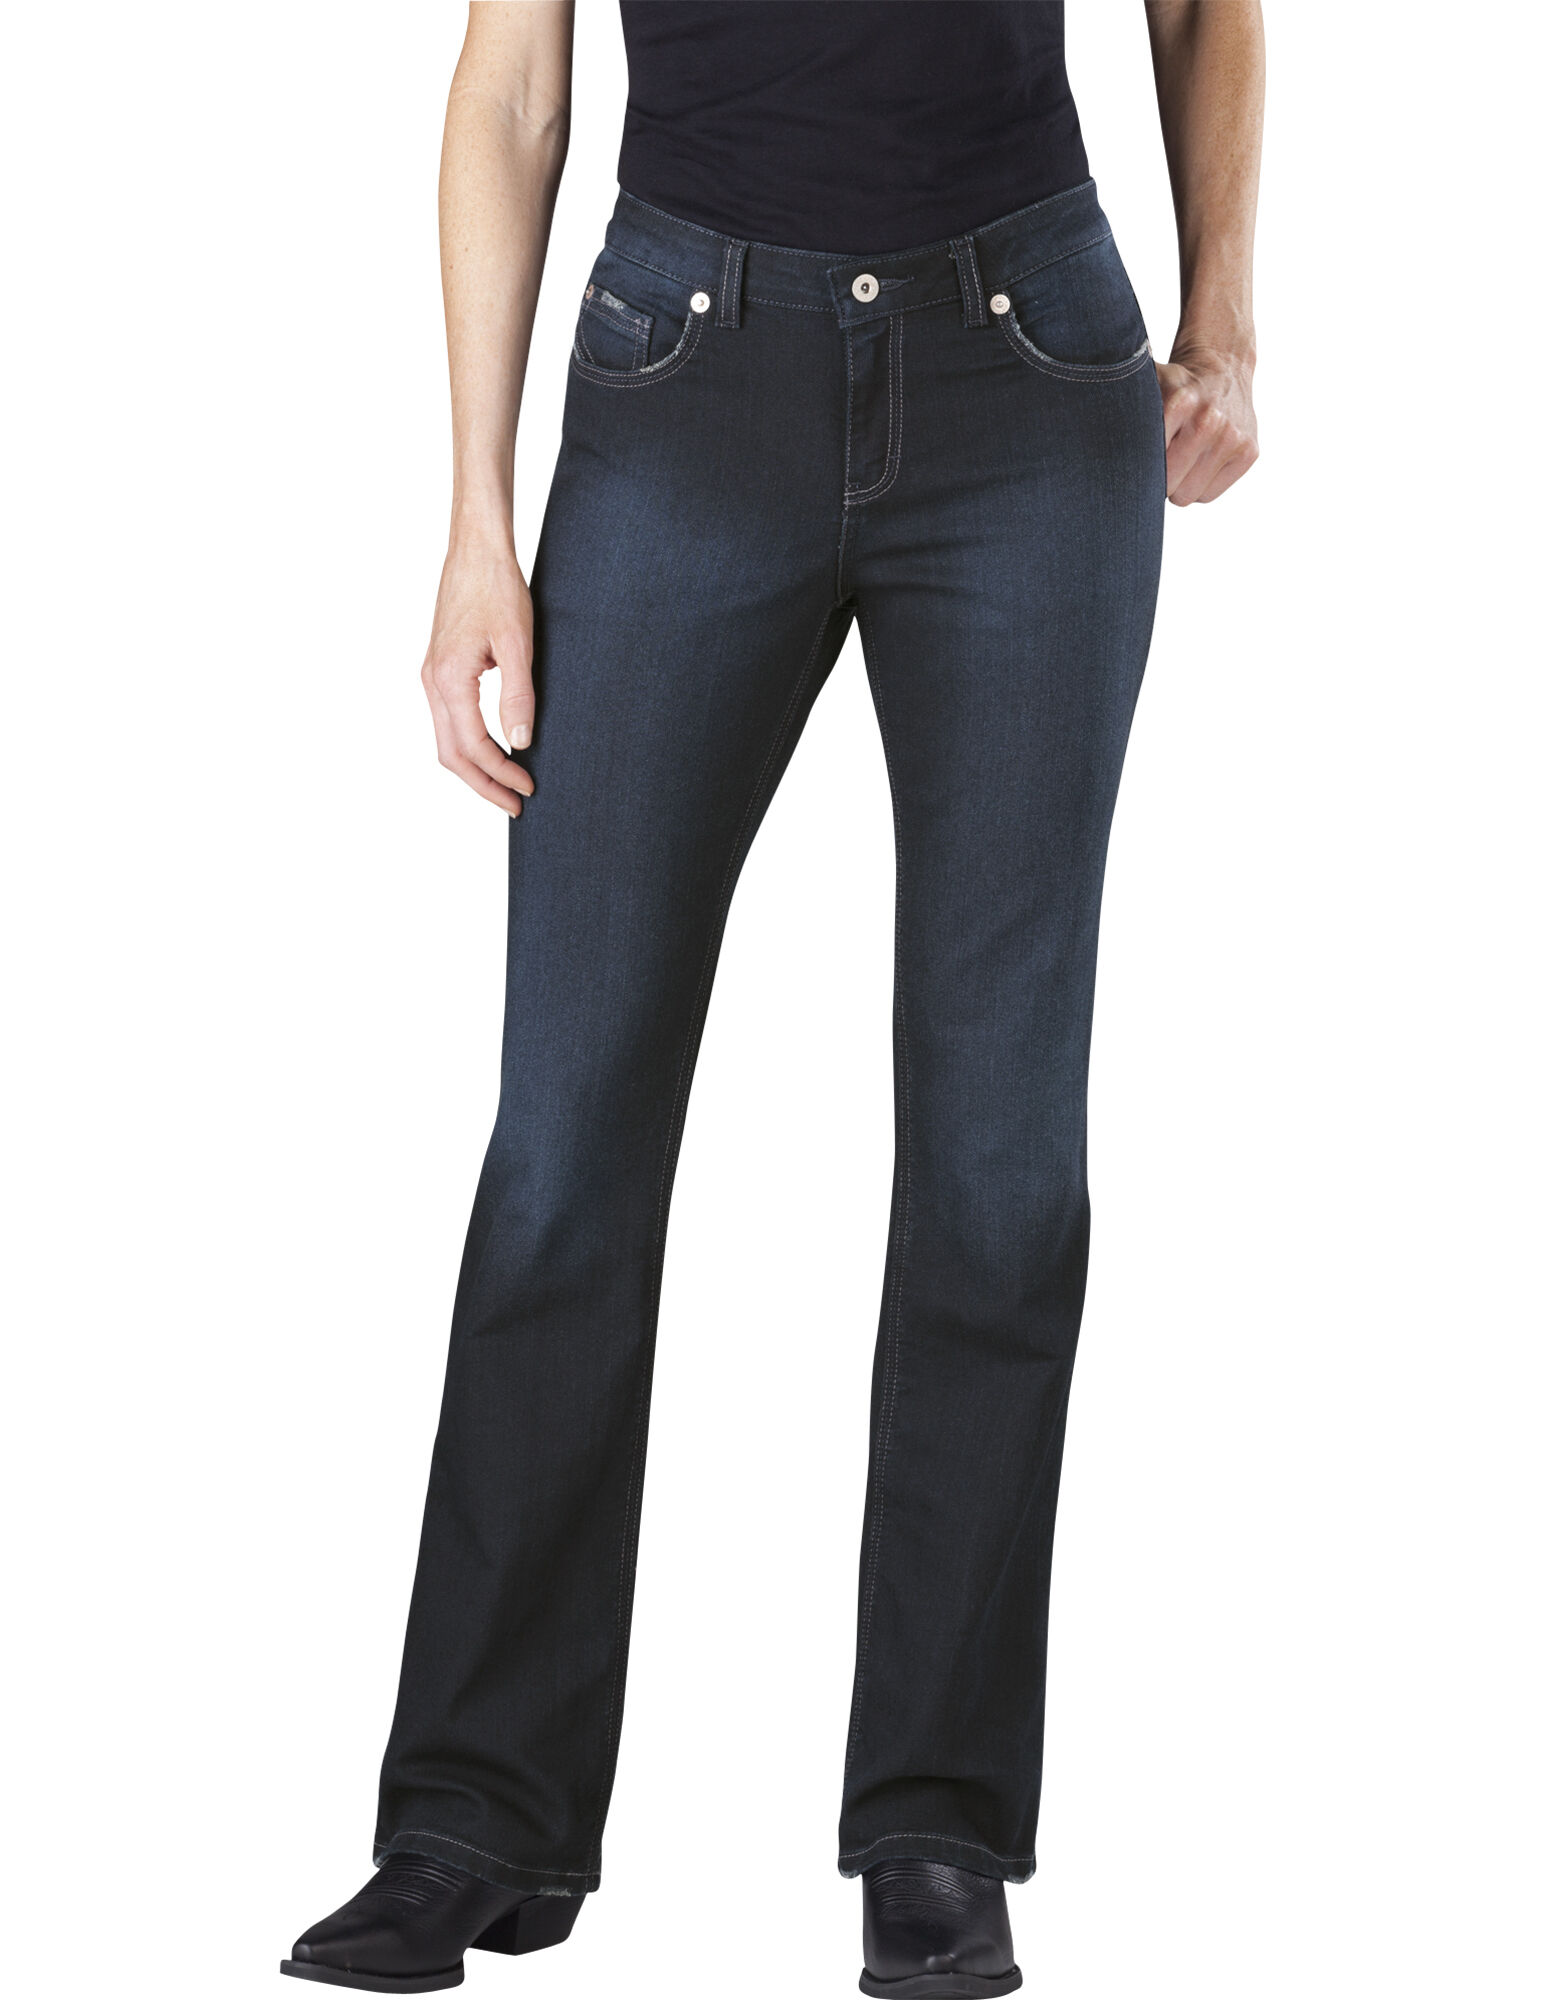 Women&39s Slim Denim Jeans | Dickies